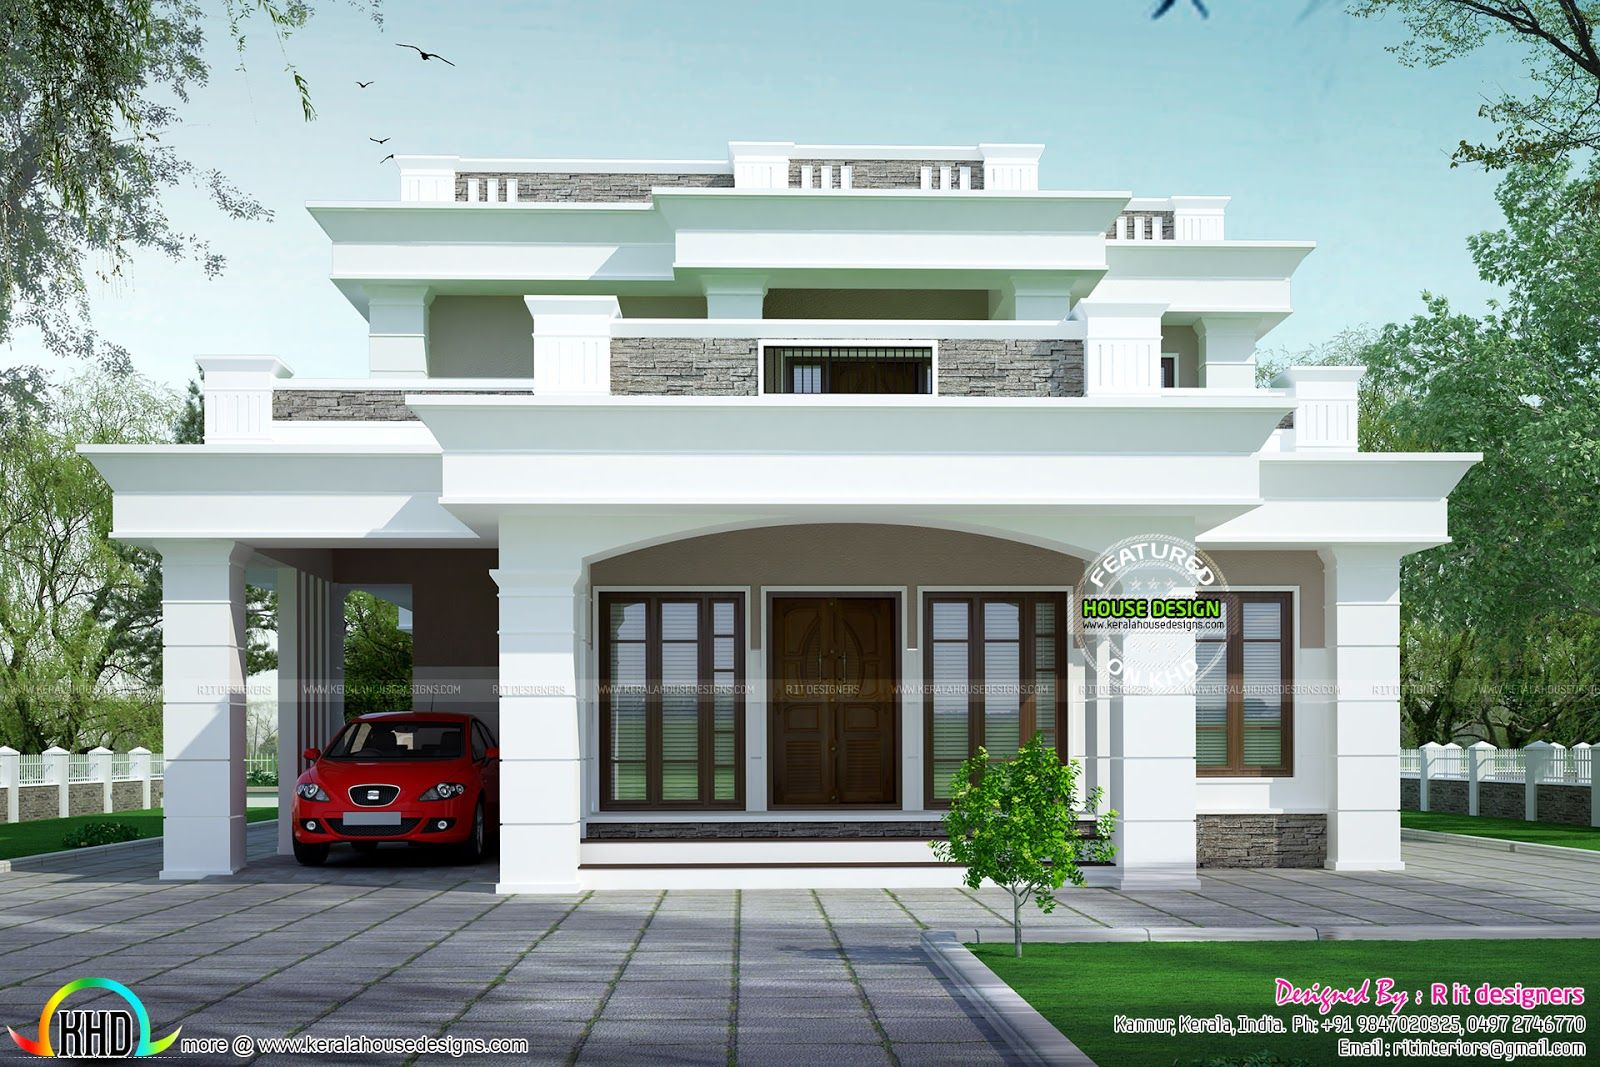 home design websites flat roof bedroom kerala single designs storey on home wallpaper websites, painting websites, genealogy websites, engineering websites, home blogs, home decorating websites, furniture websites, cooking websites, writing websites, home designing websites, research websites, poetry websites, apartment websites, microsoft websites, home childcare websites, home designs 2014, advertising websites, background designs for websites, printing websites, architect websites,